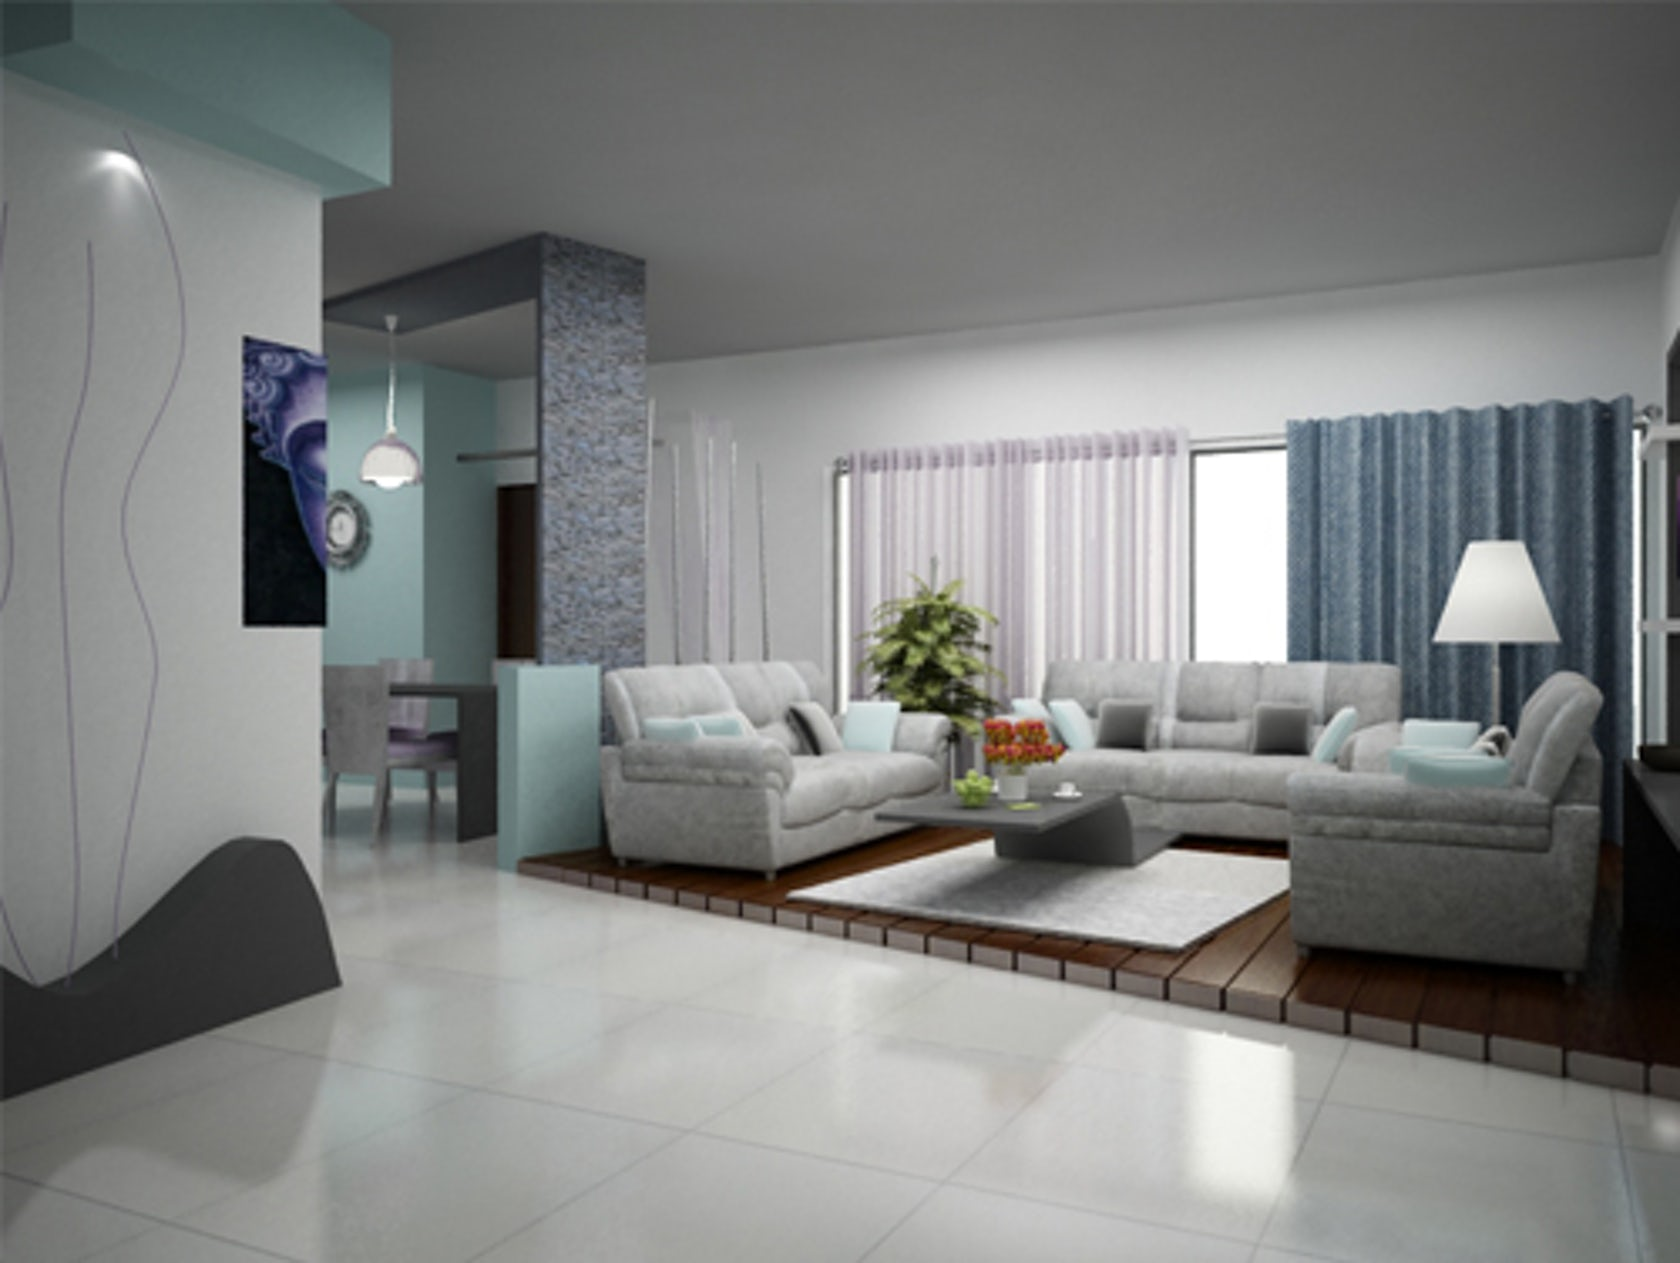 Jyothi s beautiful home interior design in bangalore - Interior design living room ideas modern ...